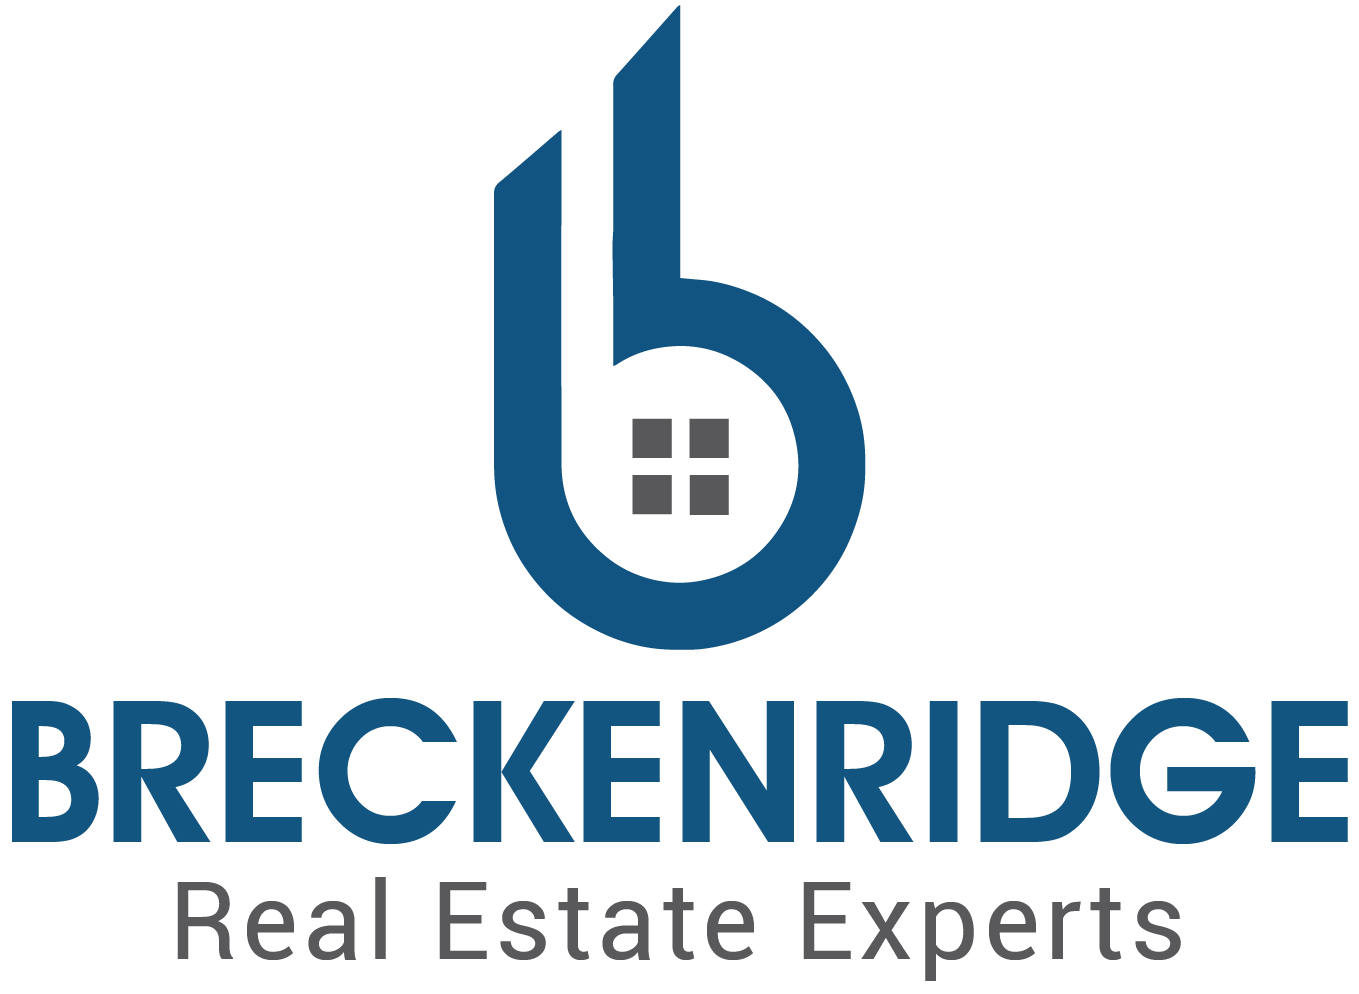 Ben BrewerBreckenridge Real Estate Experts